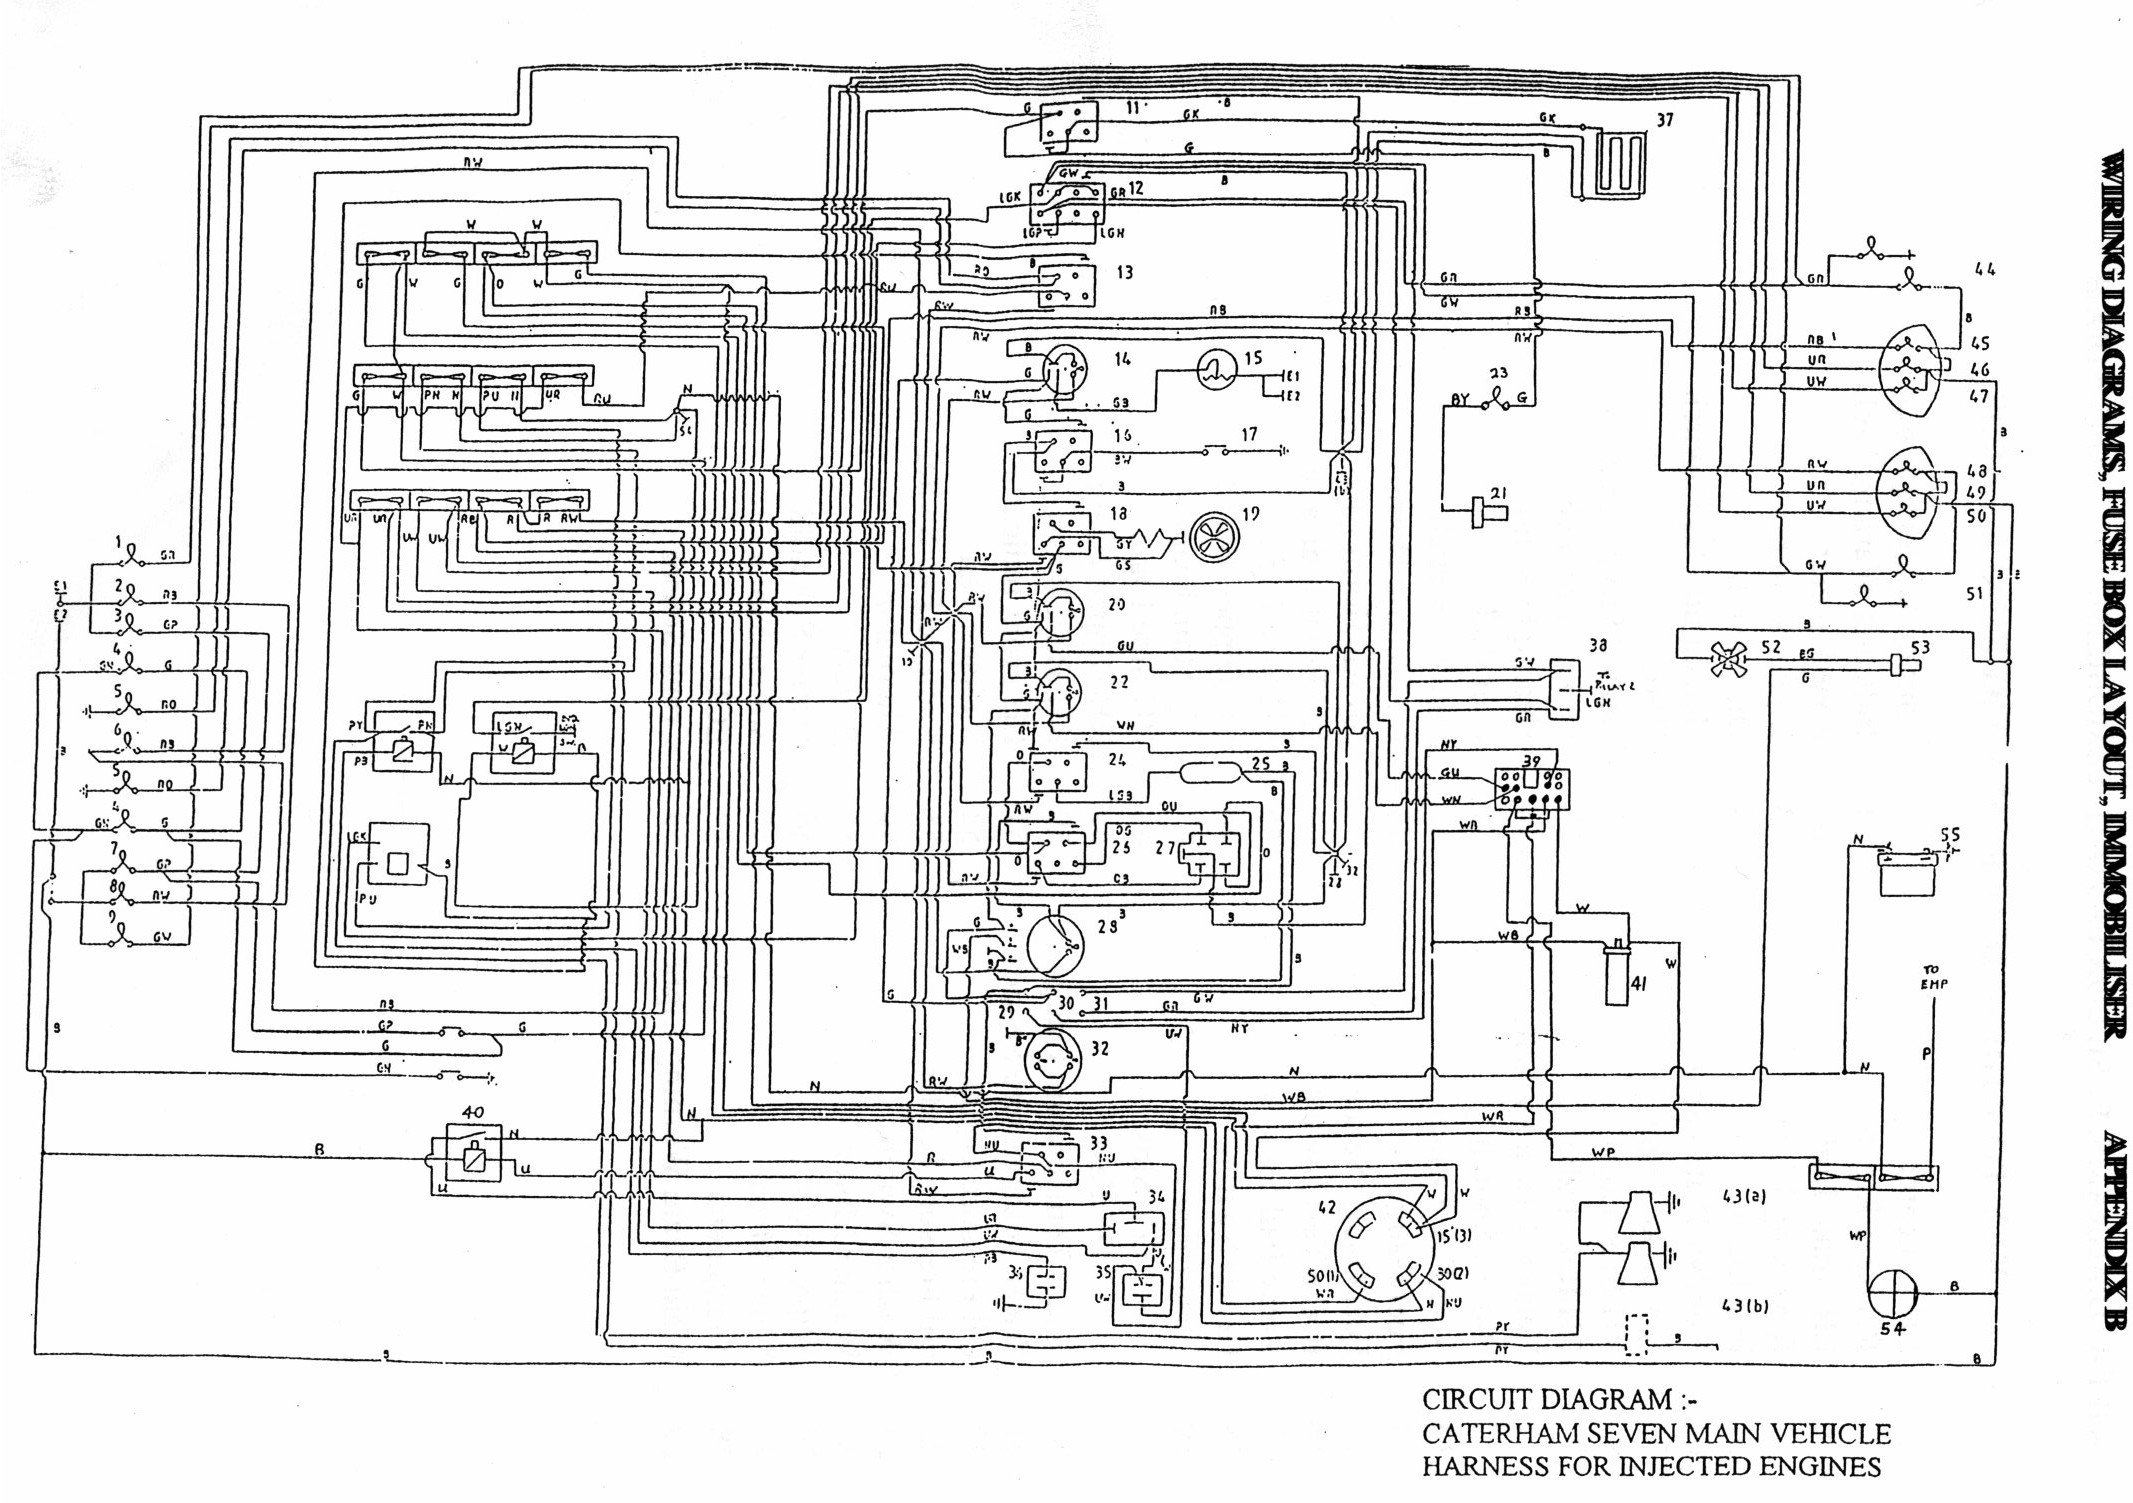 mk golf fuse box wiring diagram mk image wiring mk1 golf fuse box wiring diagram mk1 discover your wiring on mk1 golf fuse box wiring